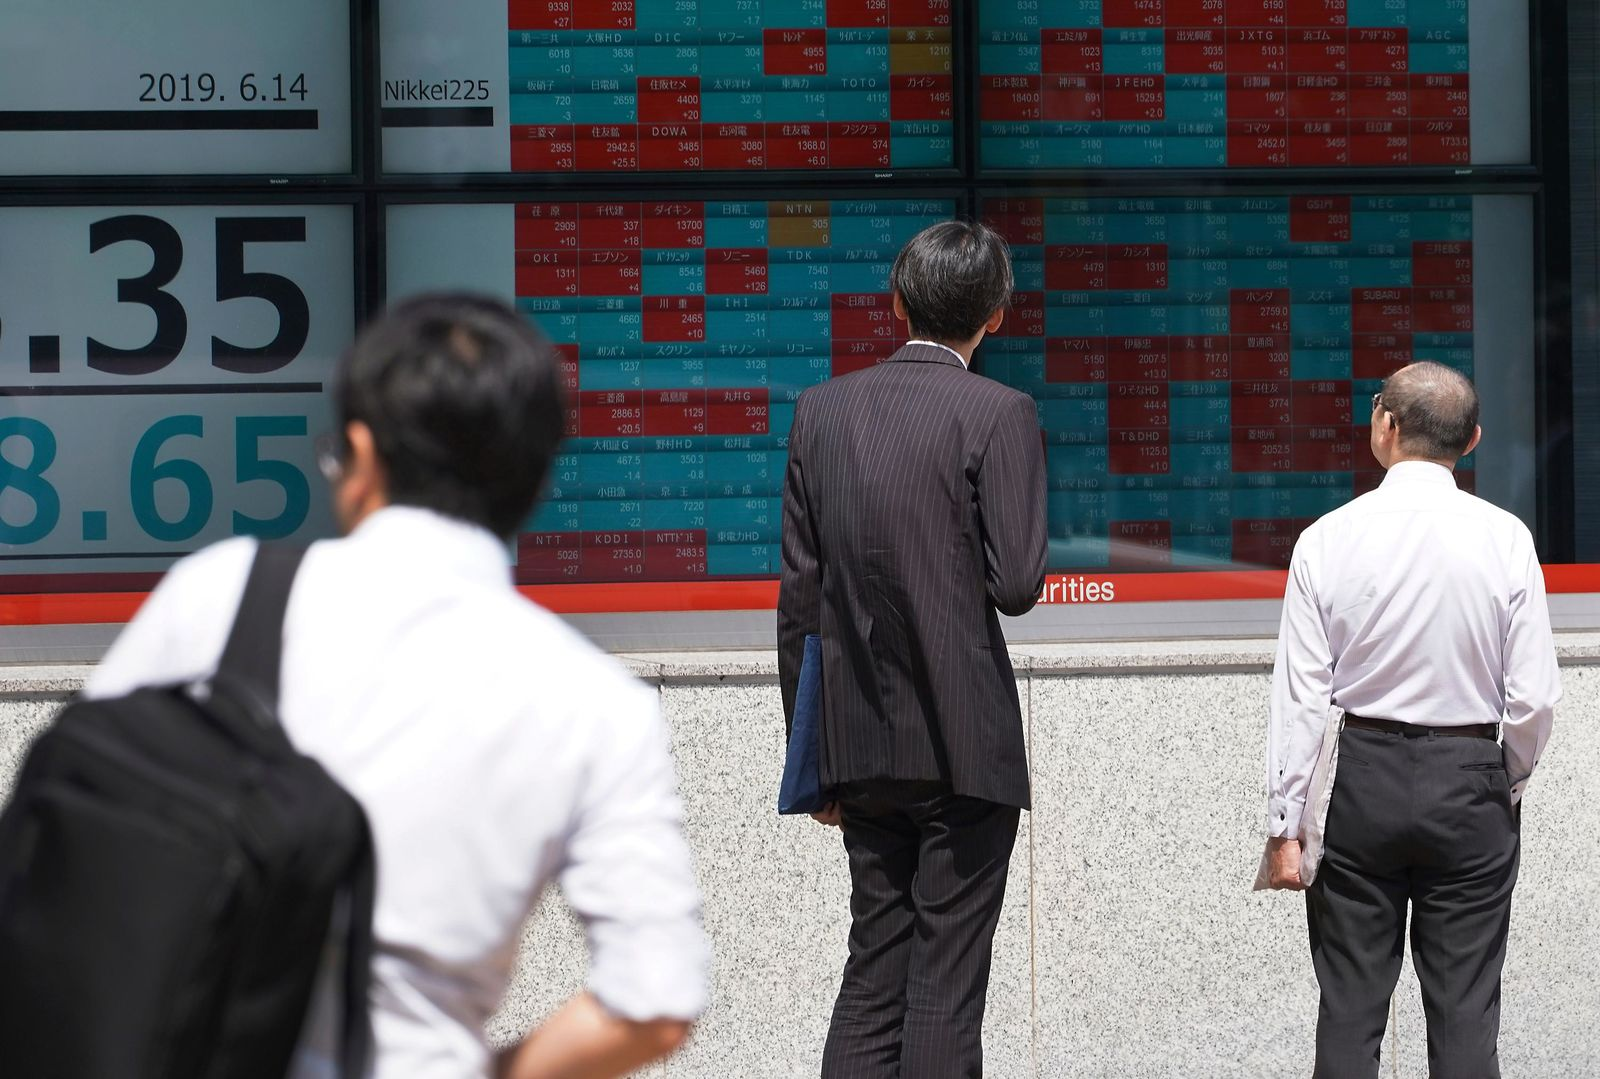 Pedestrians look at an electronic stock board showing Japan's Nikkei 225 index at a securities firm in Tokyo Friday, June 14, 2019. (AP Photo/Eugene Hoshiko)